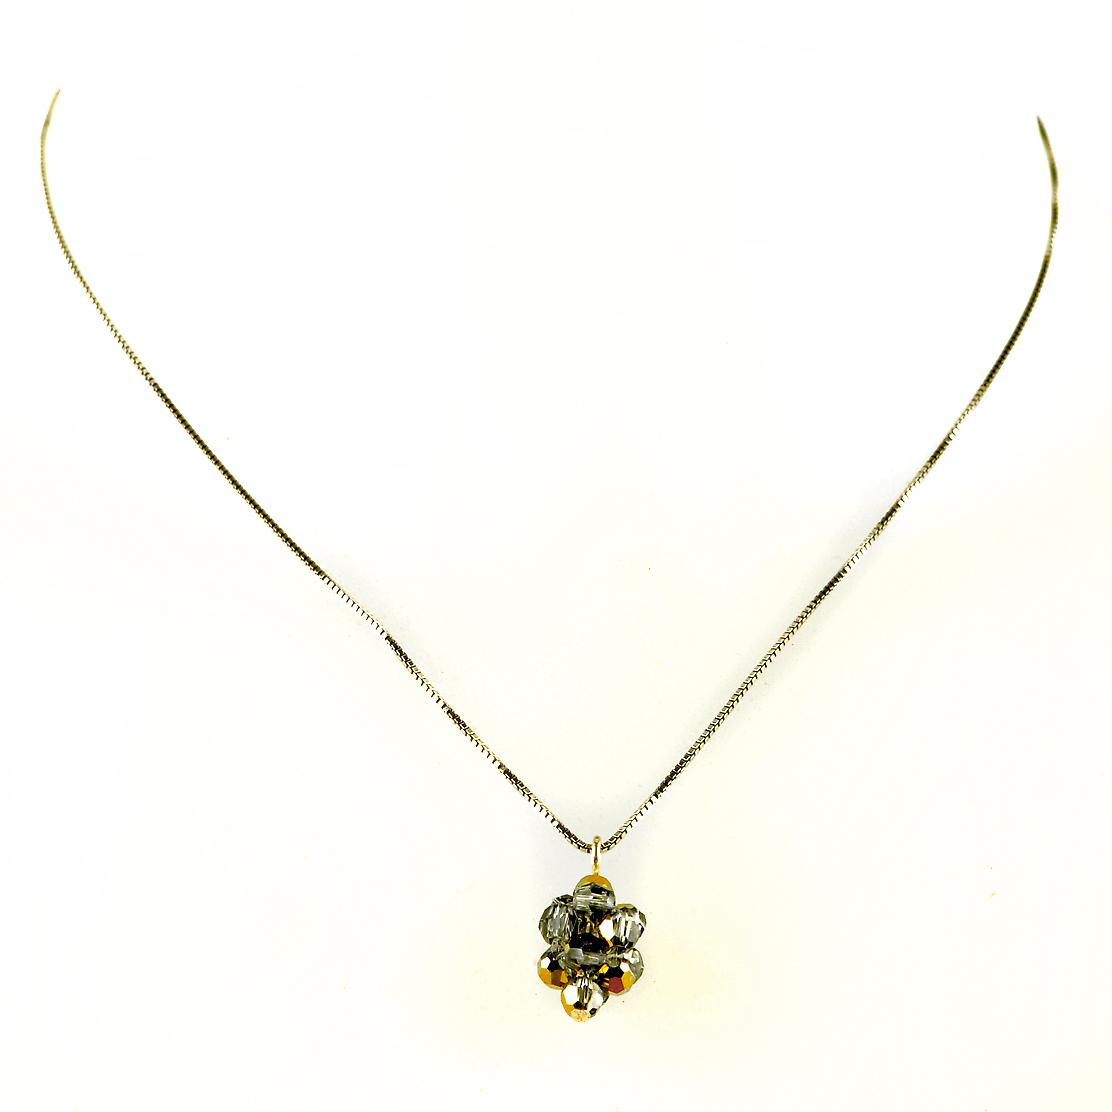 Waooh - jewelry - WJ0294 - necklace with silver Swarovski Crystal and gold - chain silver